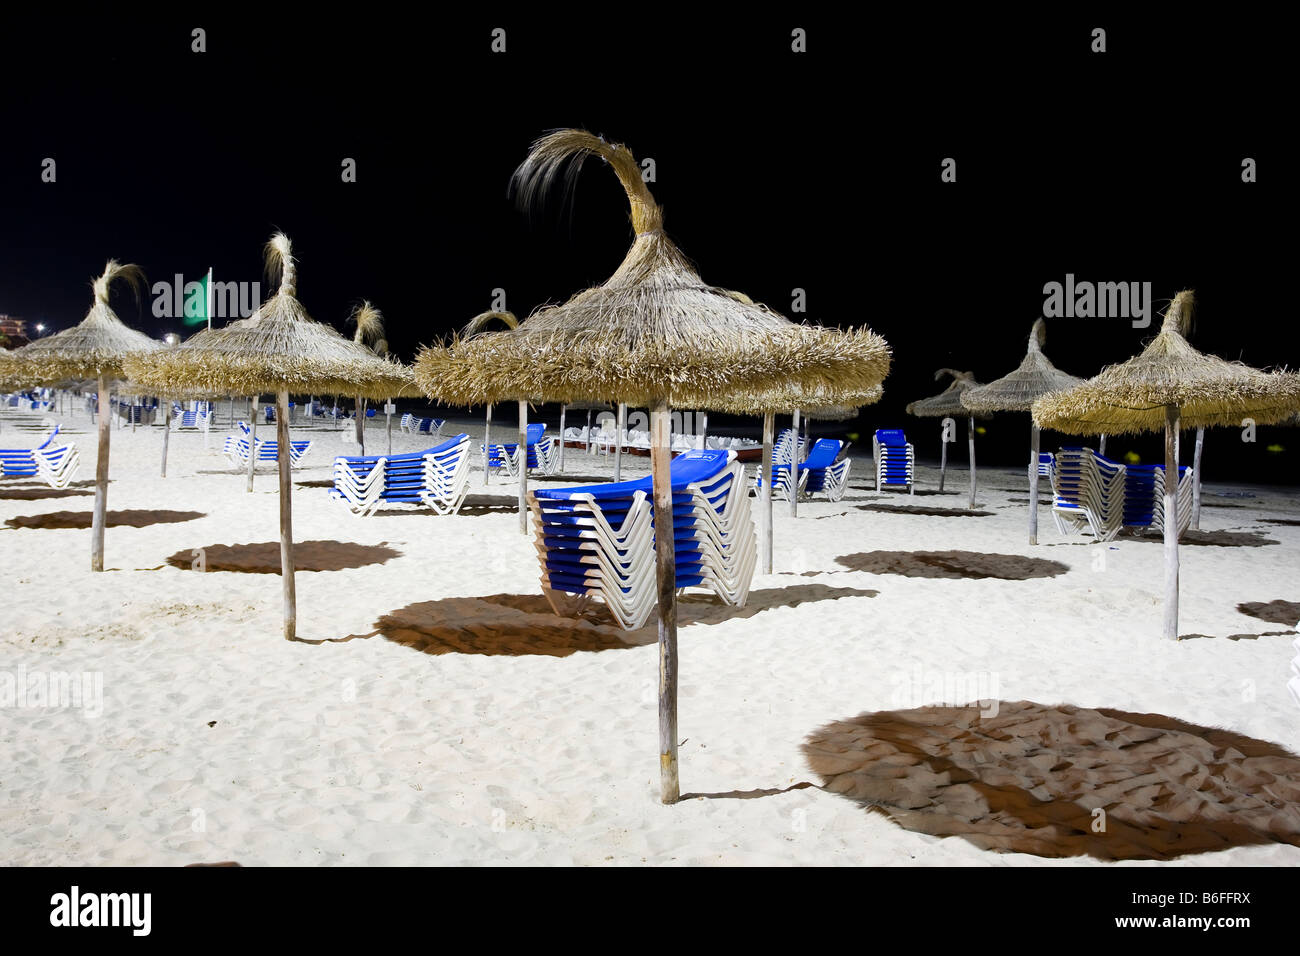 Sunshades and stacked deckchairs on the beach of Sa Coma at night, Majorca, Balearic Islands, Spain, Europe - Stock Image